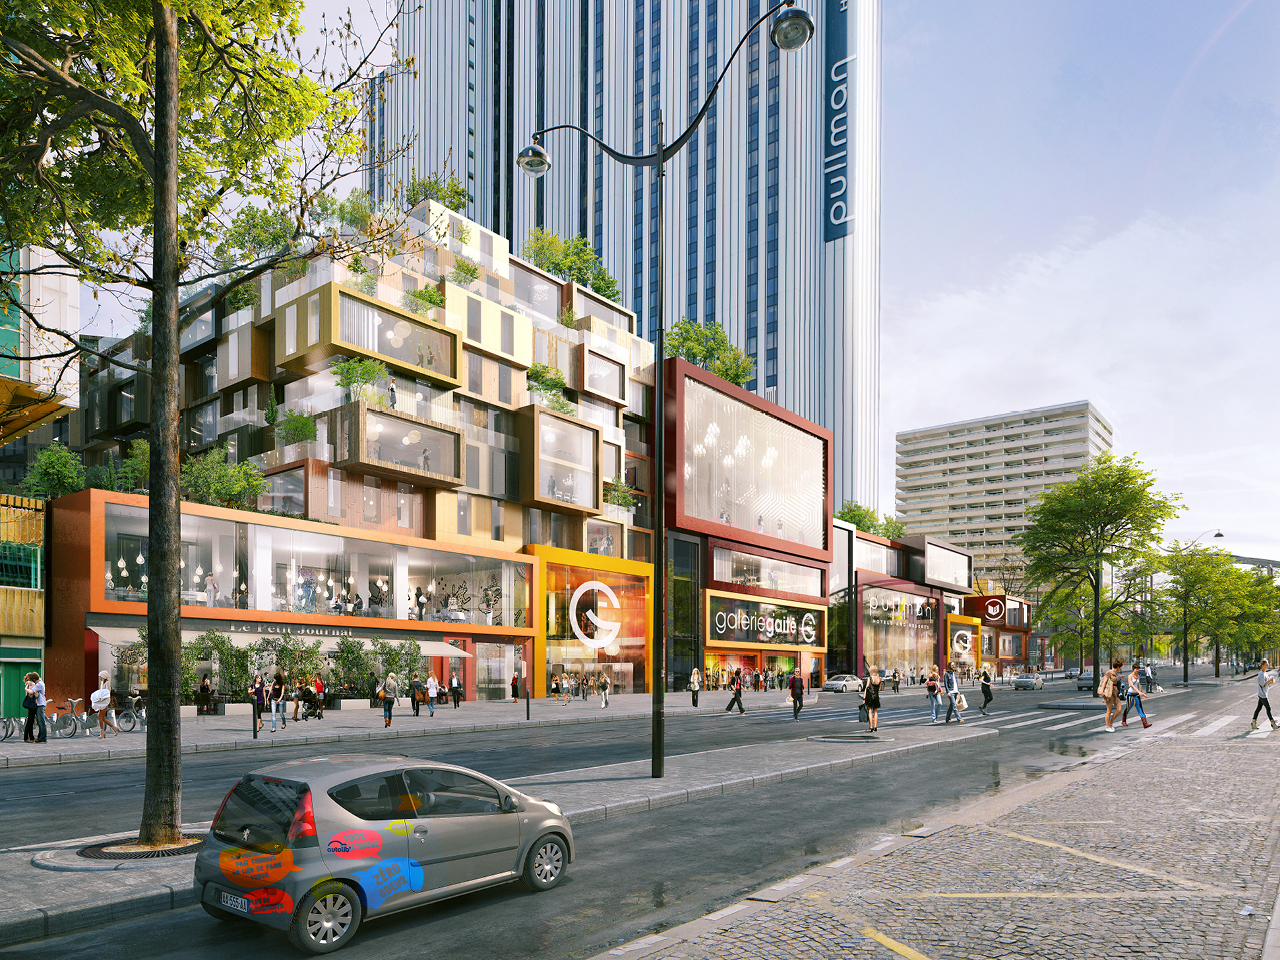 City of Paris approves MVRDV's restructuring of 1970s superblock in Montparnasse